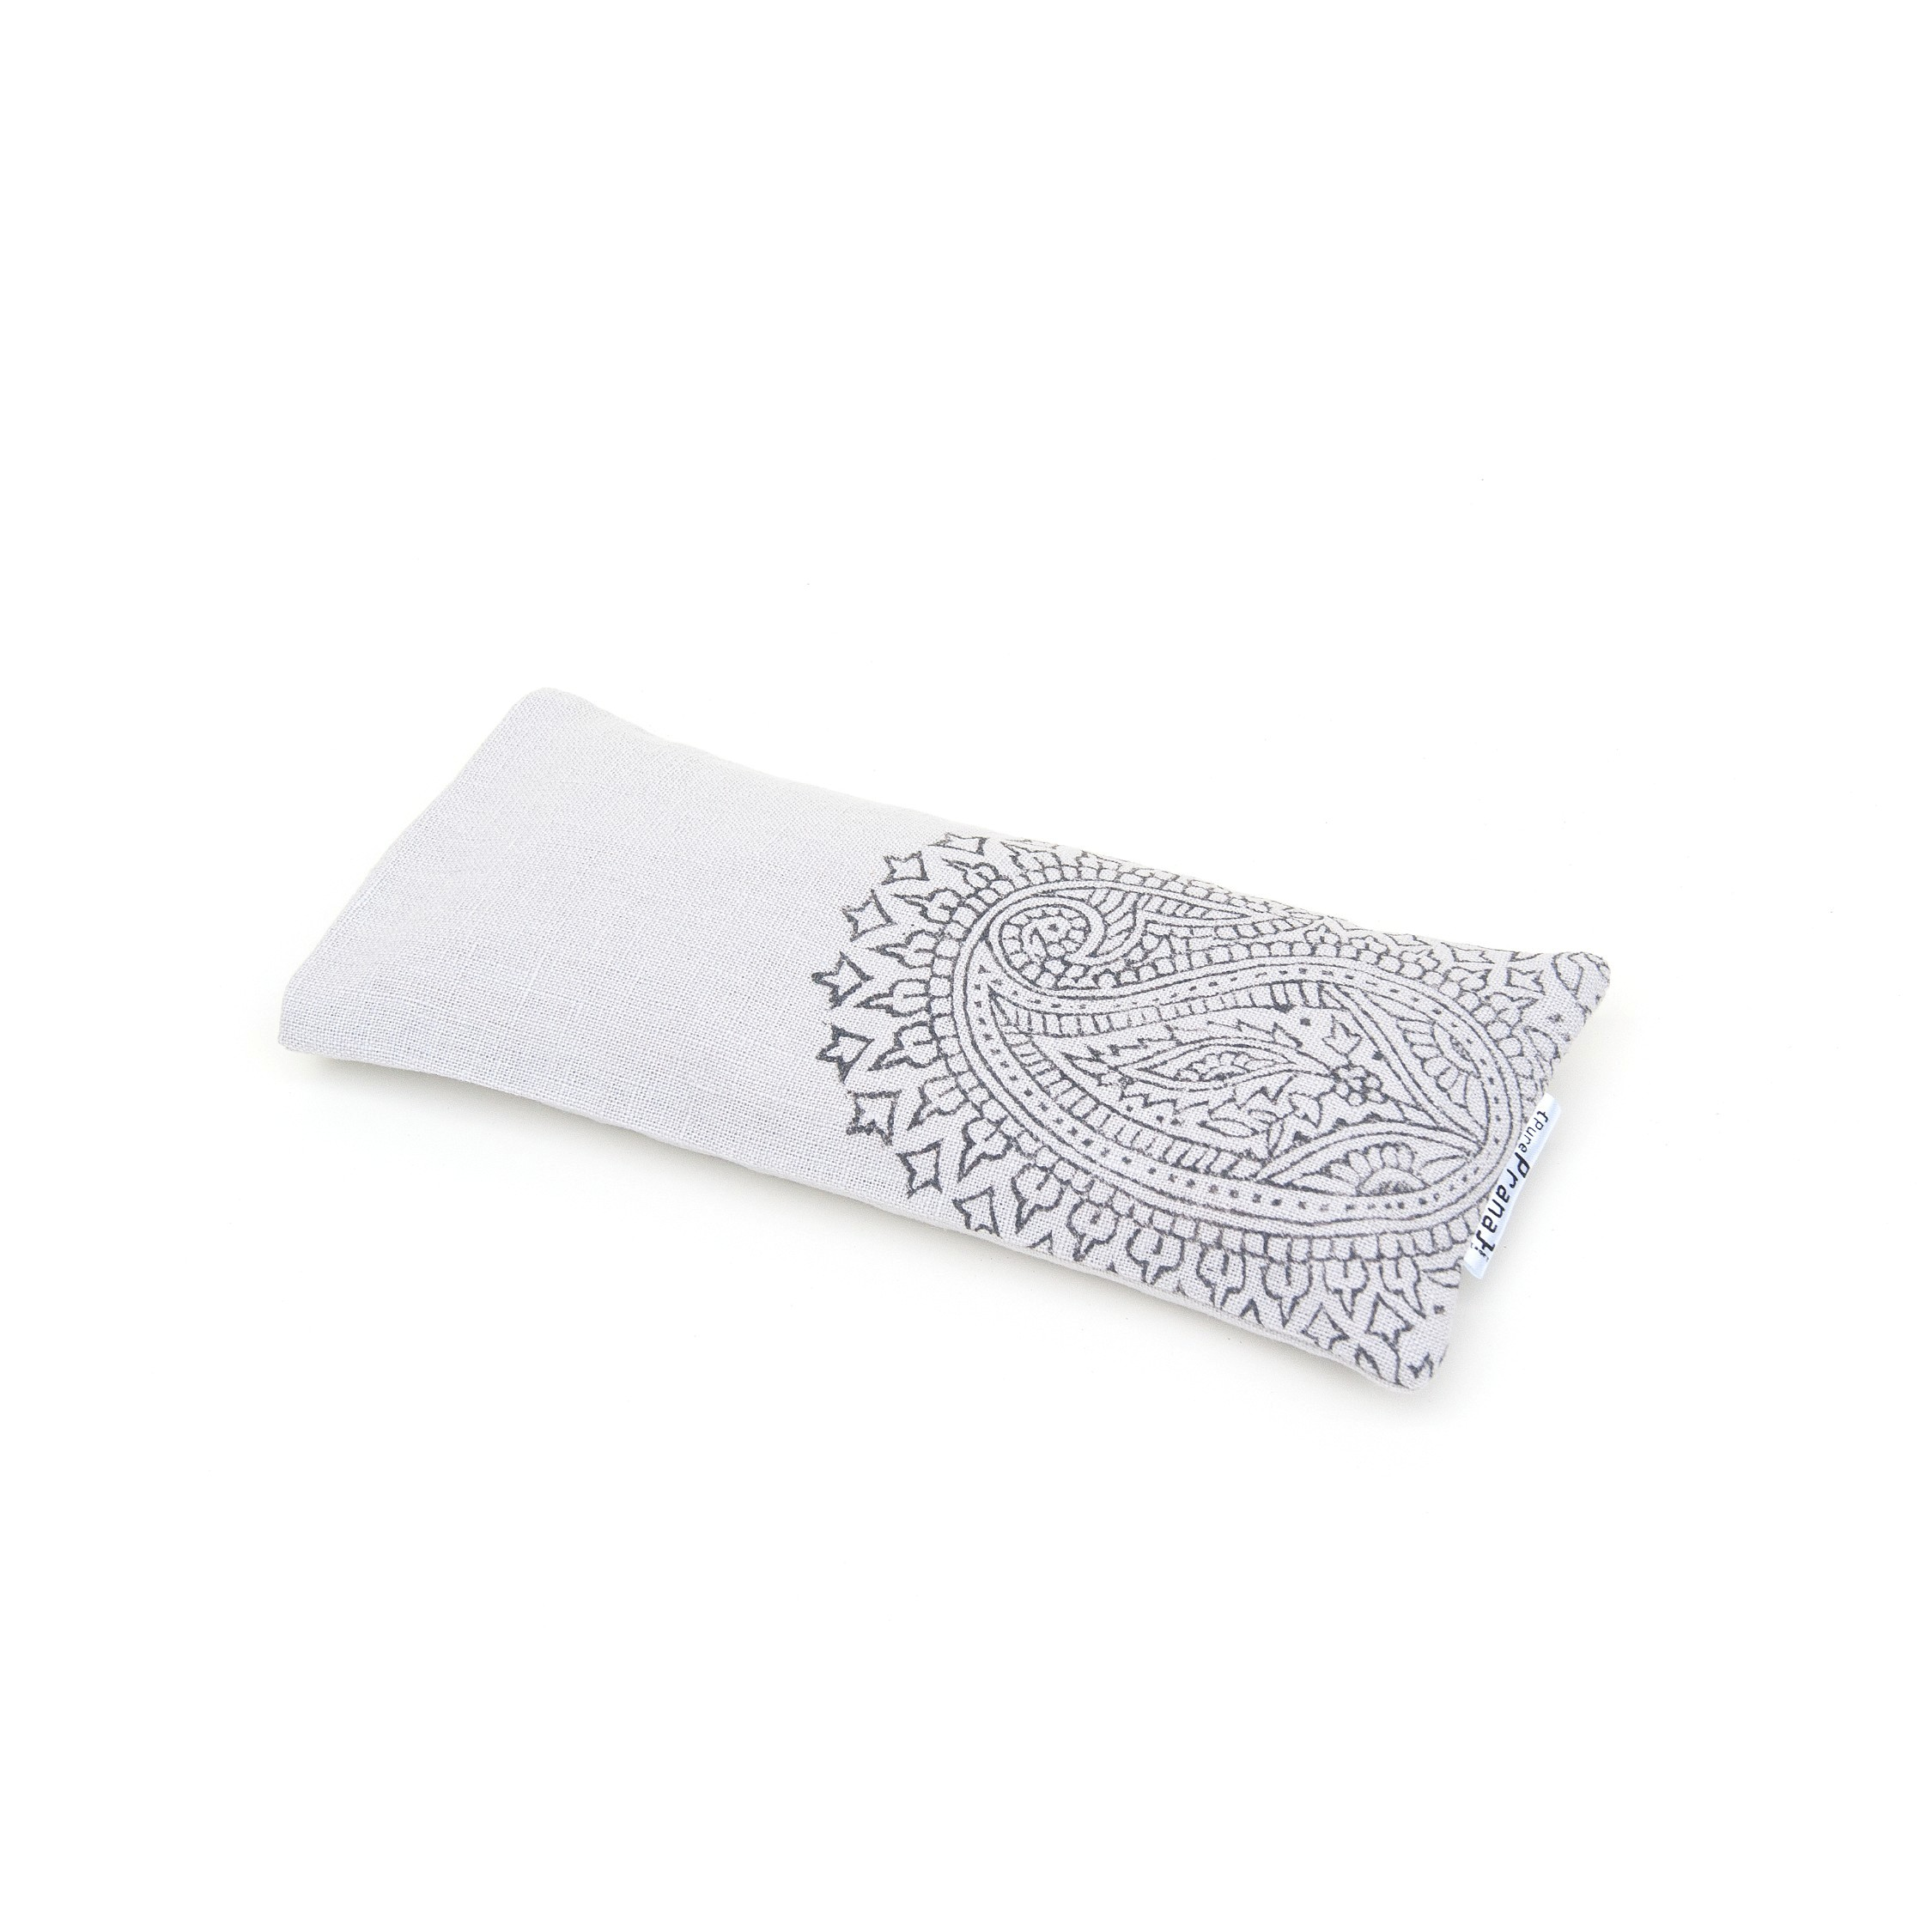 Crystal eye pillow, light grey Paisley by Pure Prana Label, 100% flax linen meditation products.